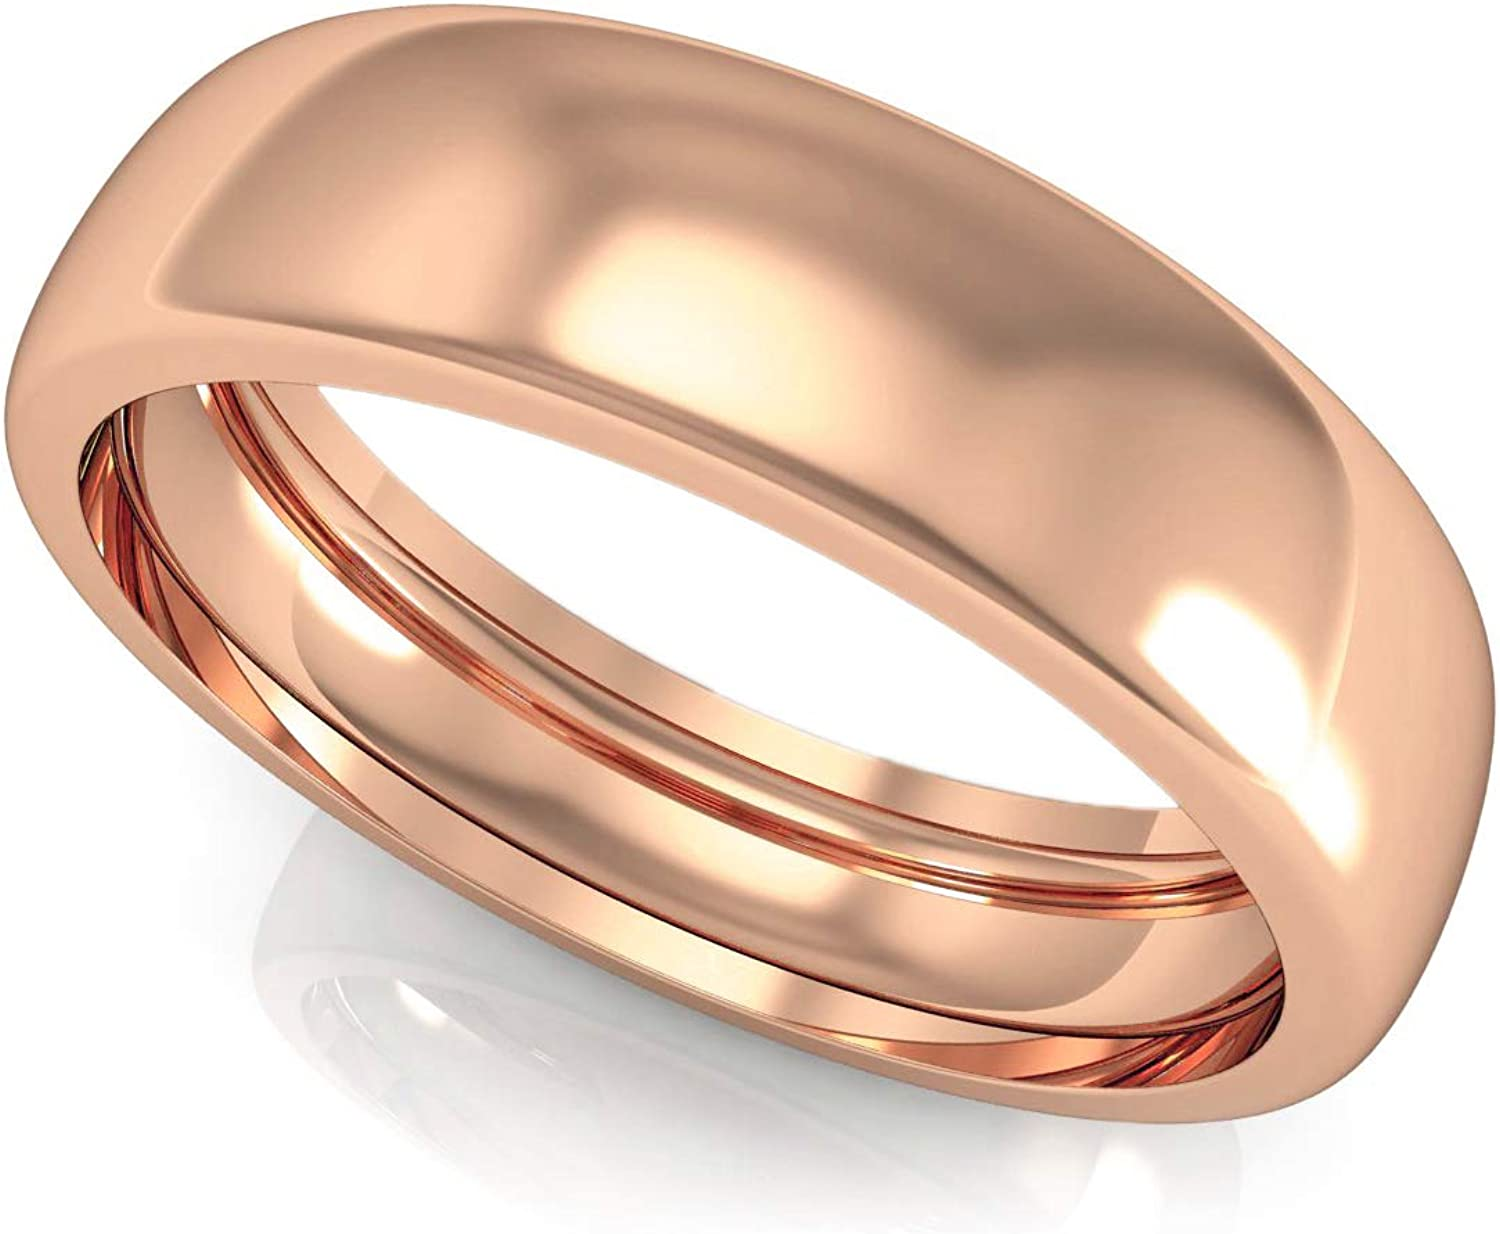 ASHNE JEWELS IGI Certified, Designer Wedding Engagement Band Ring Made in 14K Solid Rose Gold Precious Fine Jewelry For Men